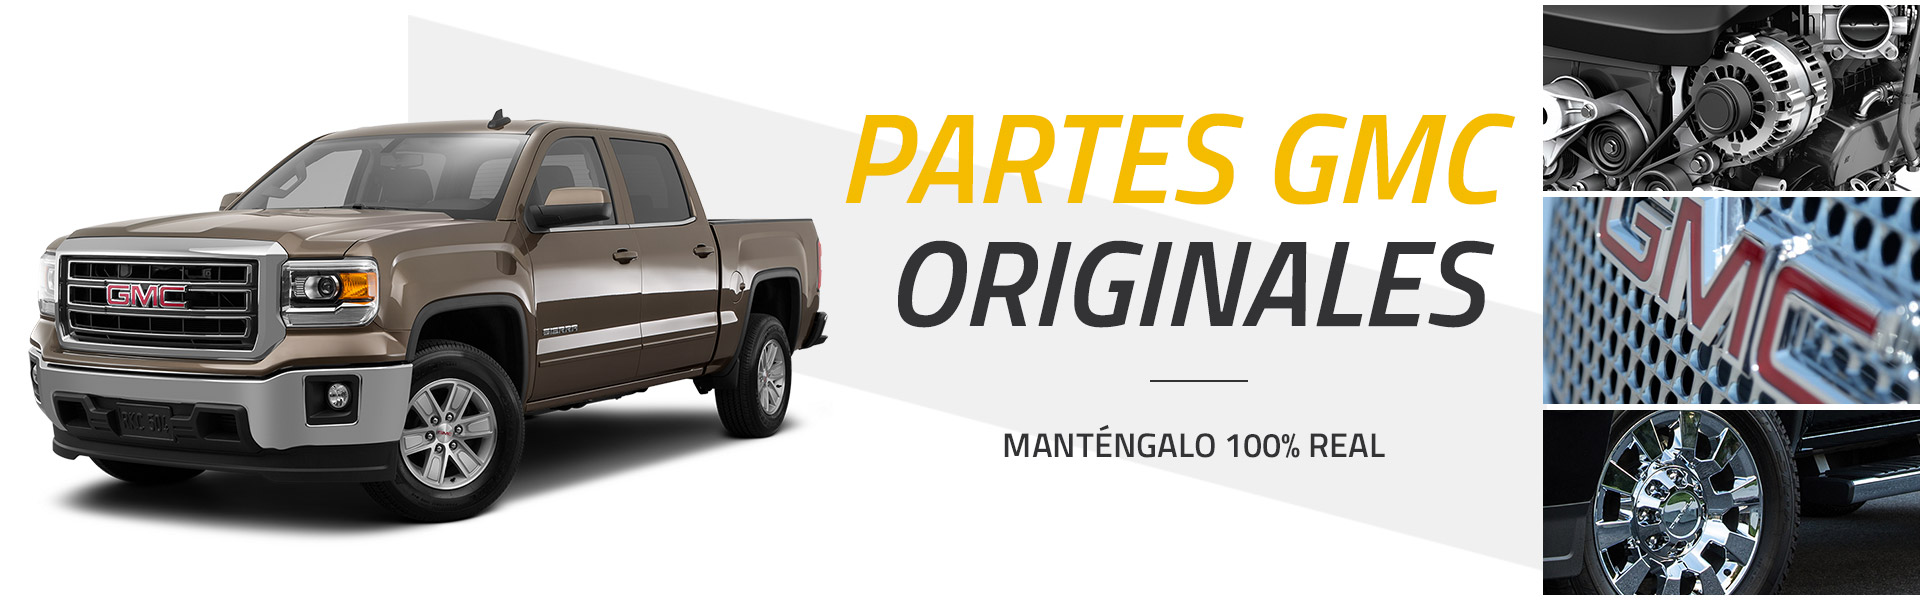 Partes GMC originales - Mantengalo 100% real